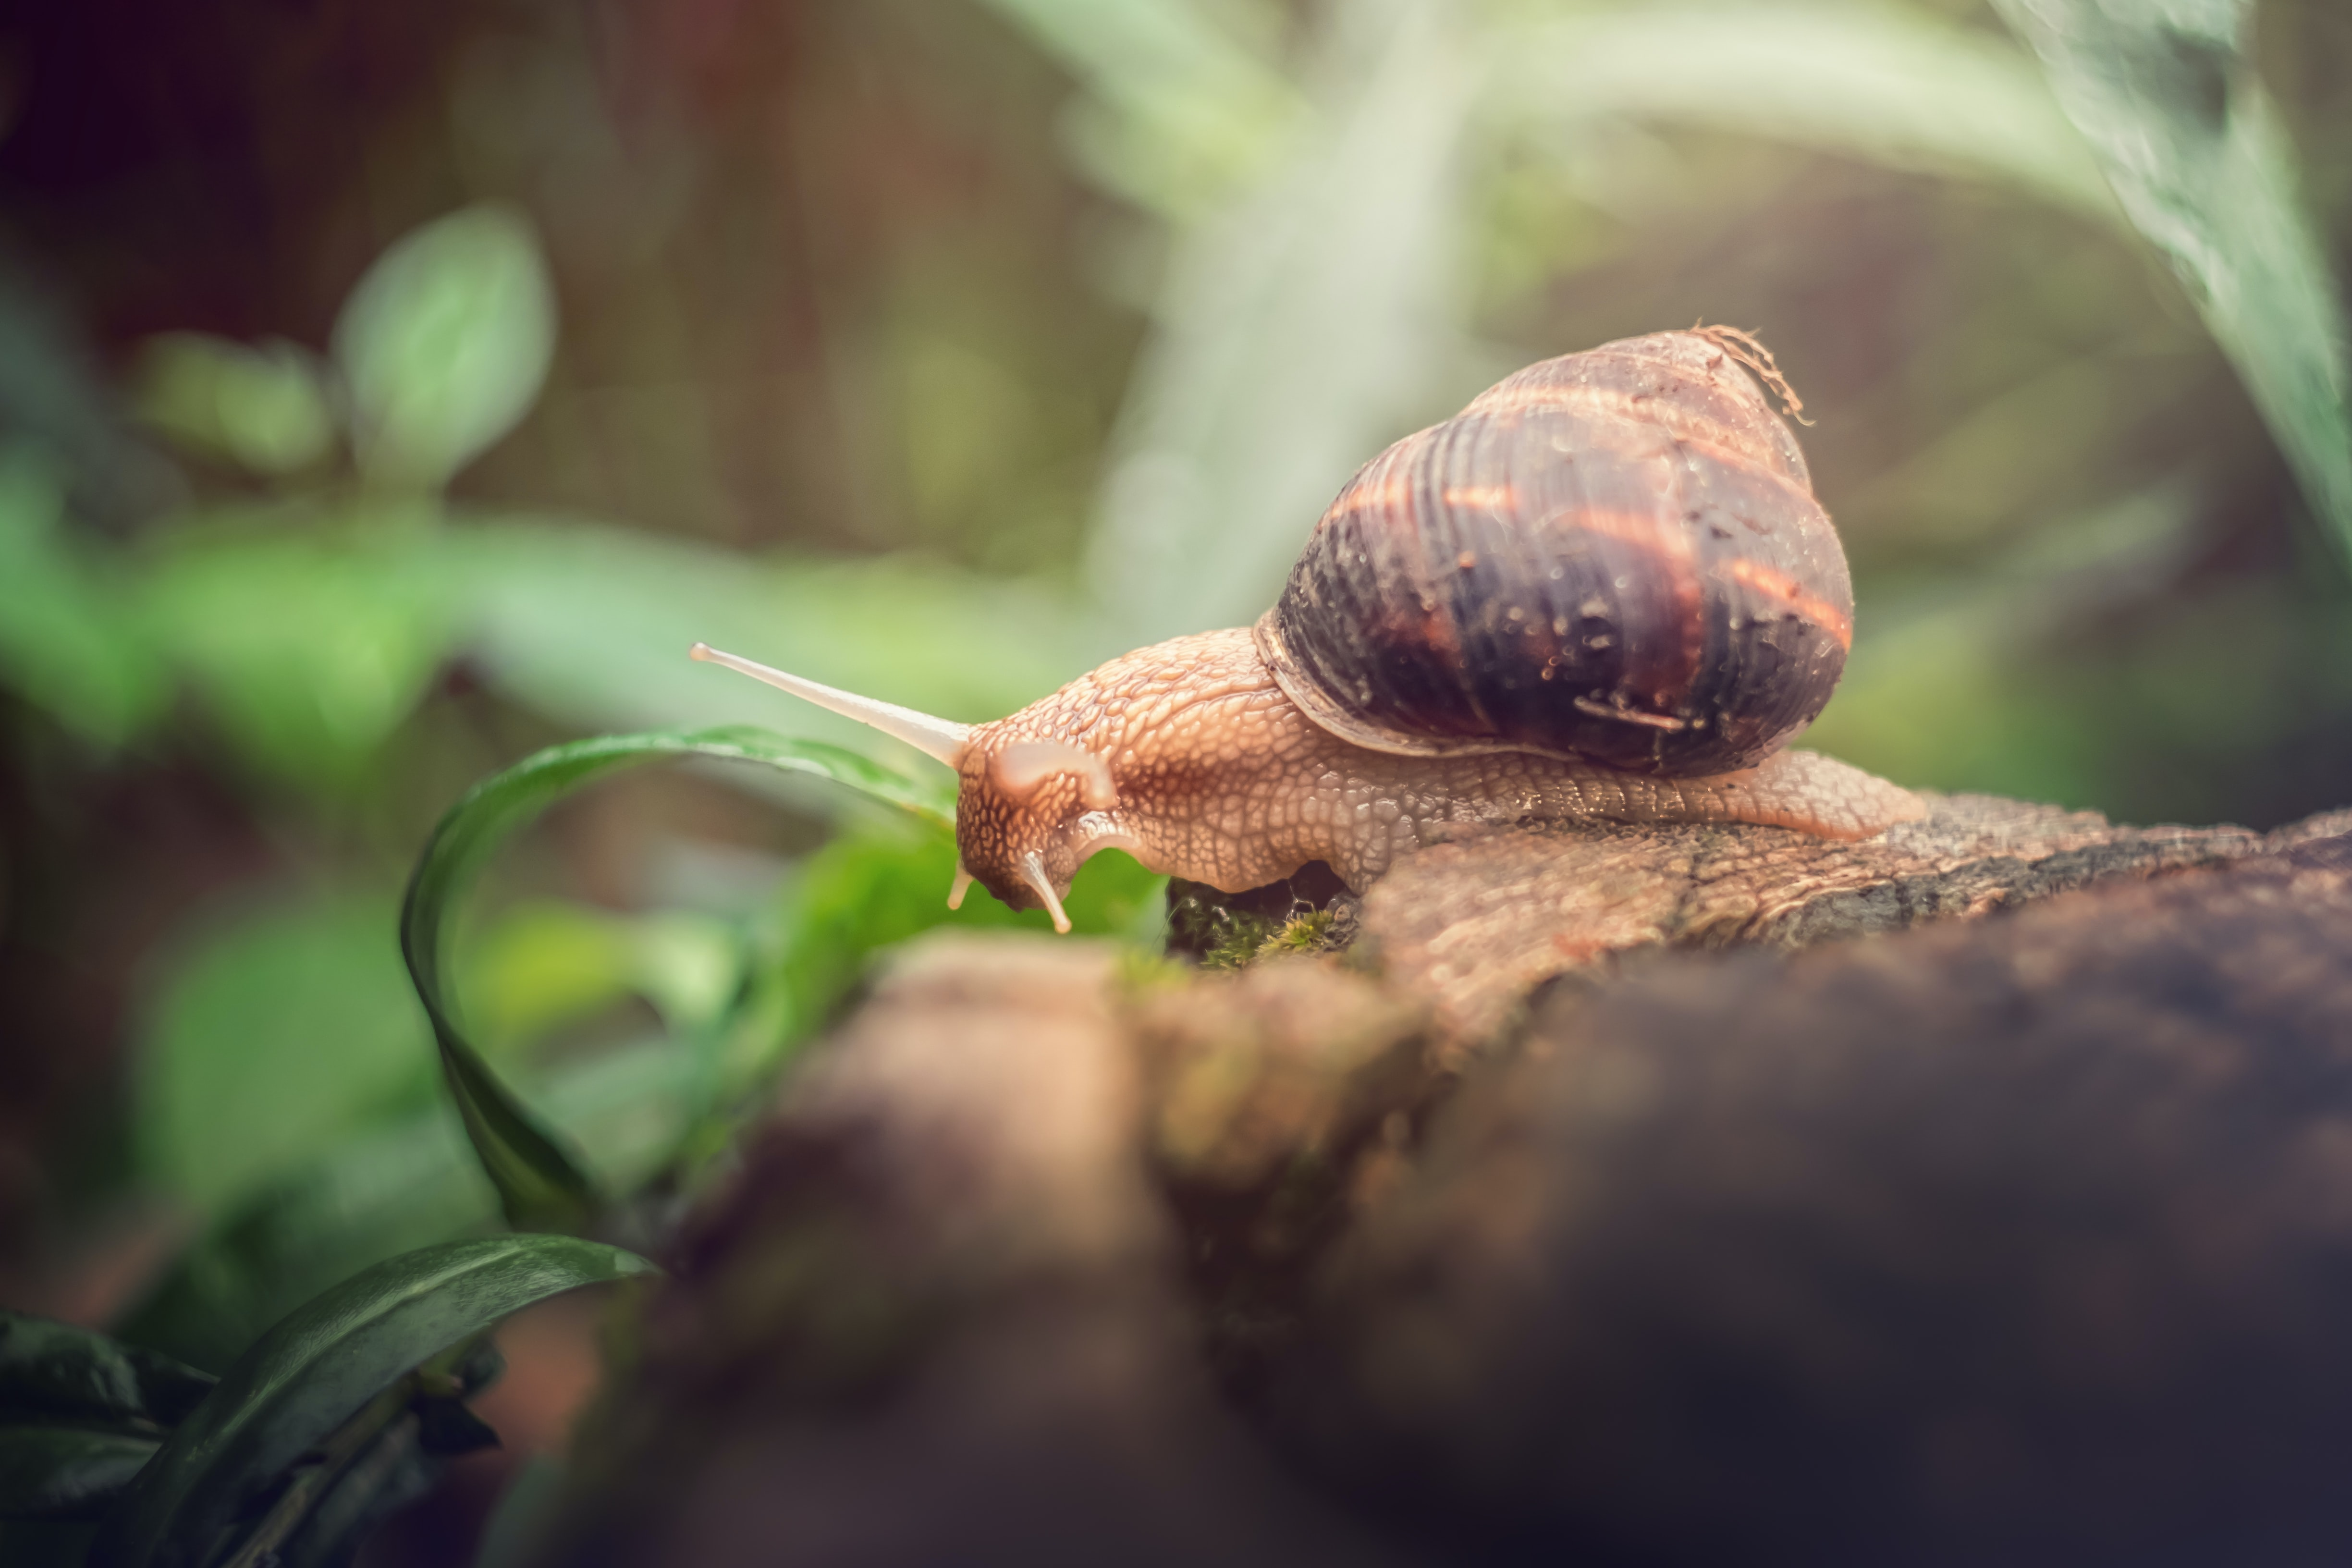 brown and black snail closeup photography